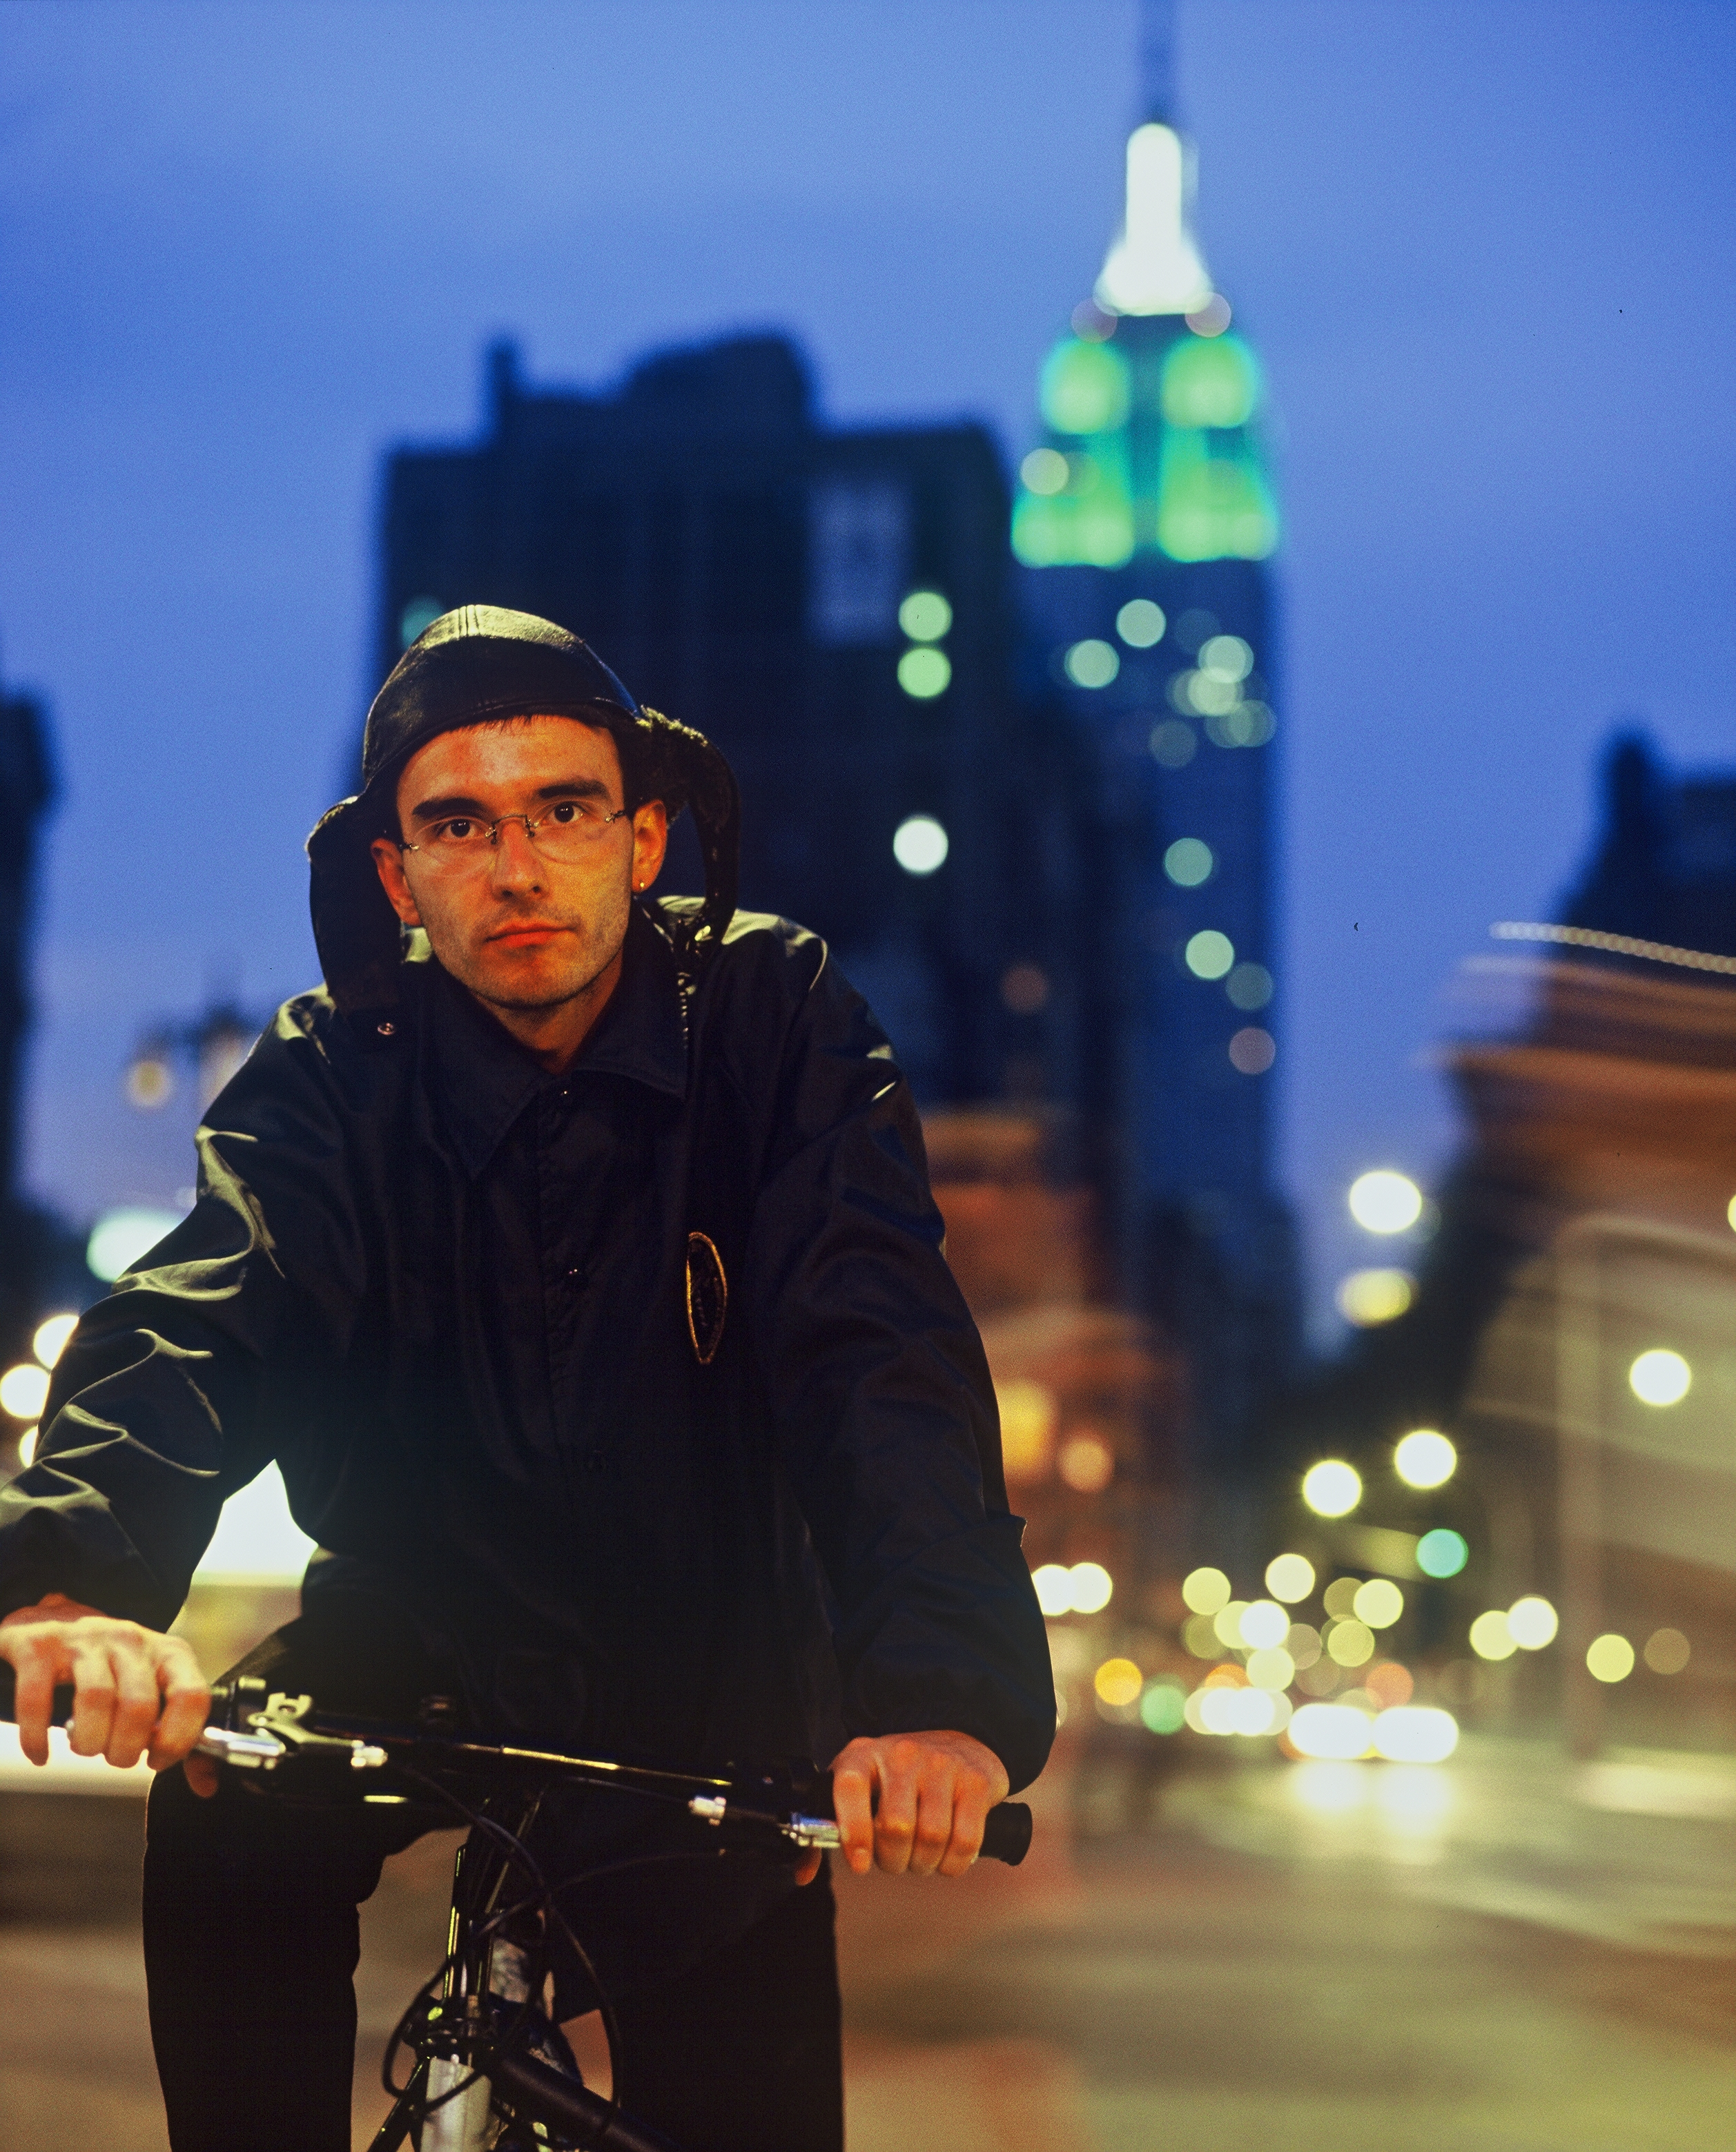 qua_Mark_Benecke_on_Bike_Empire_State_NYC_by_martin_schoeller_ask_him_for_permission